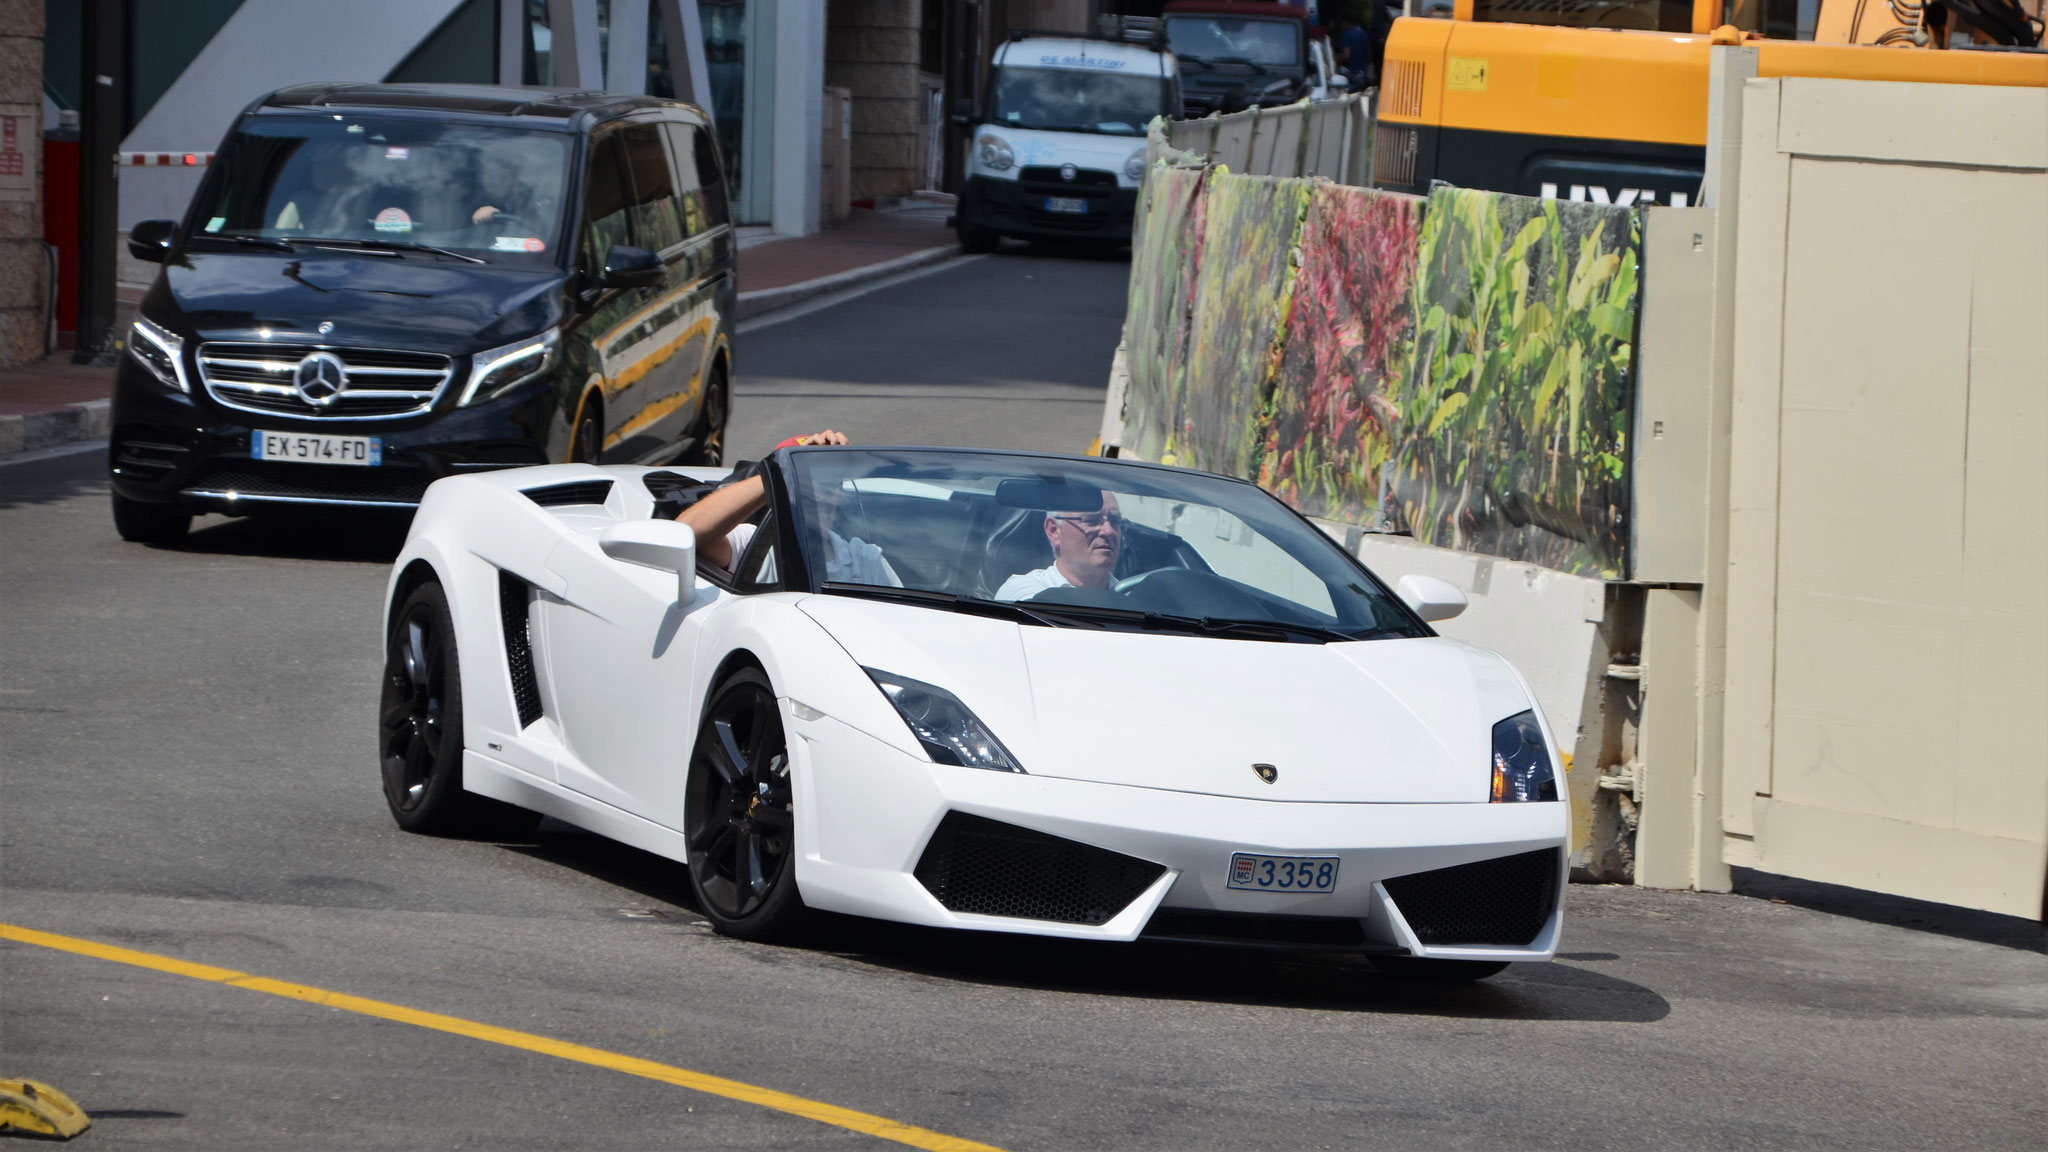 Lamborghini Gallardo LP 550 Spyder - 3358 (MC)